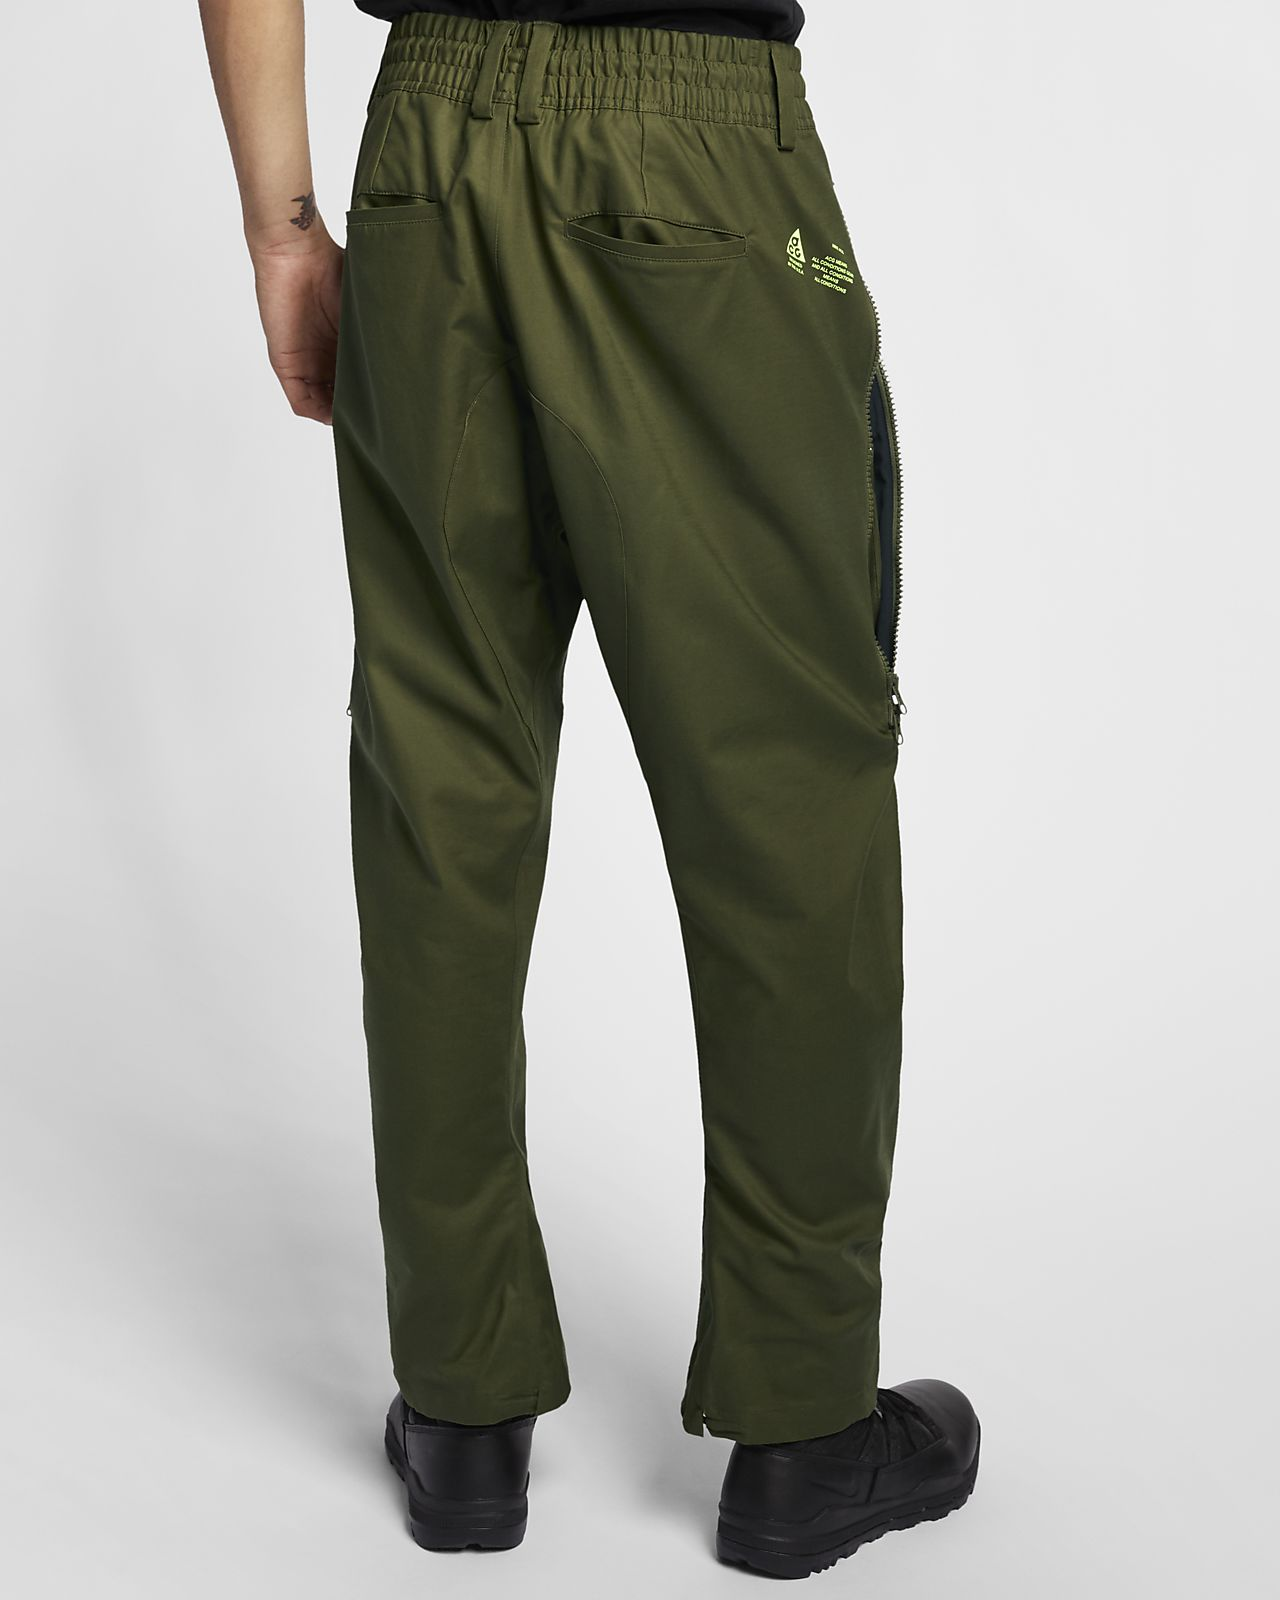 finest selection 6409d 11284 ... NikeLab ACG Men s Cargo Trousers